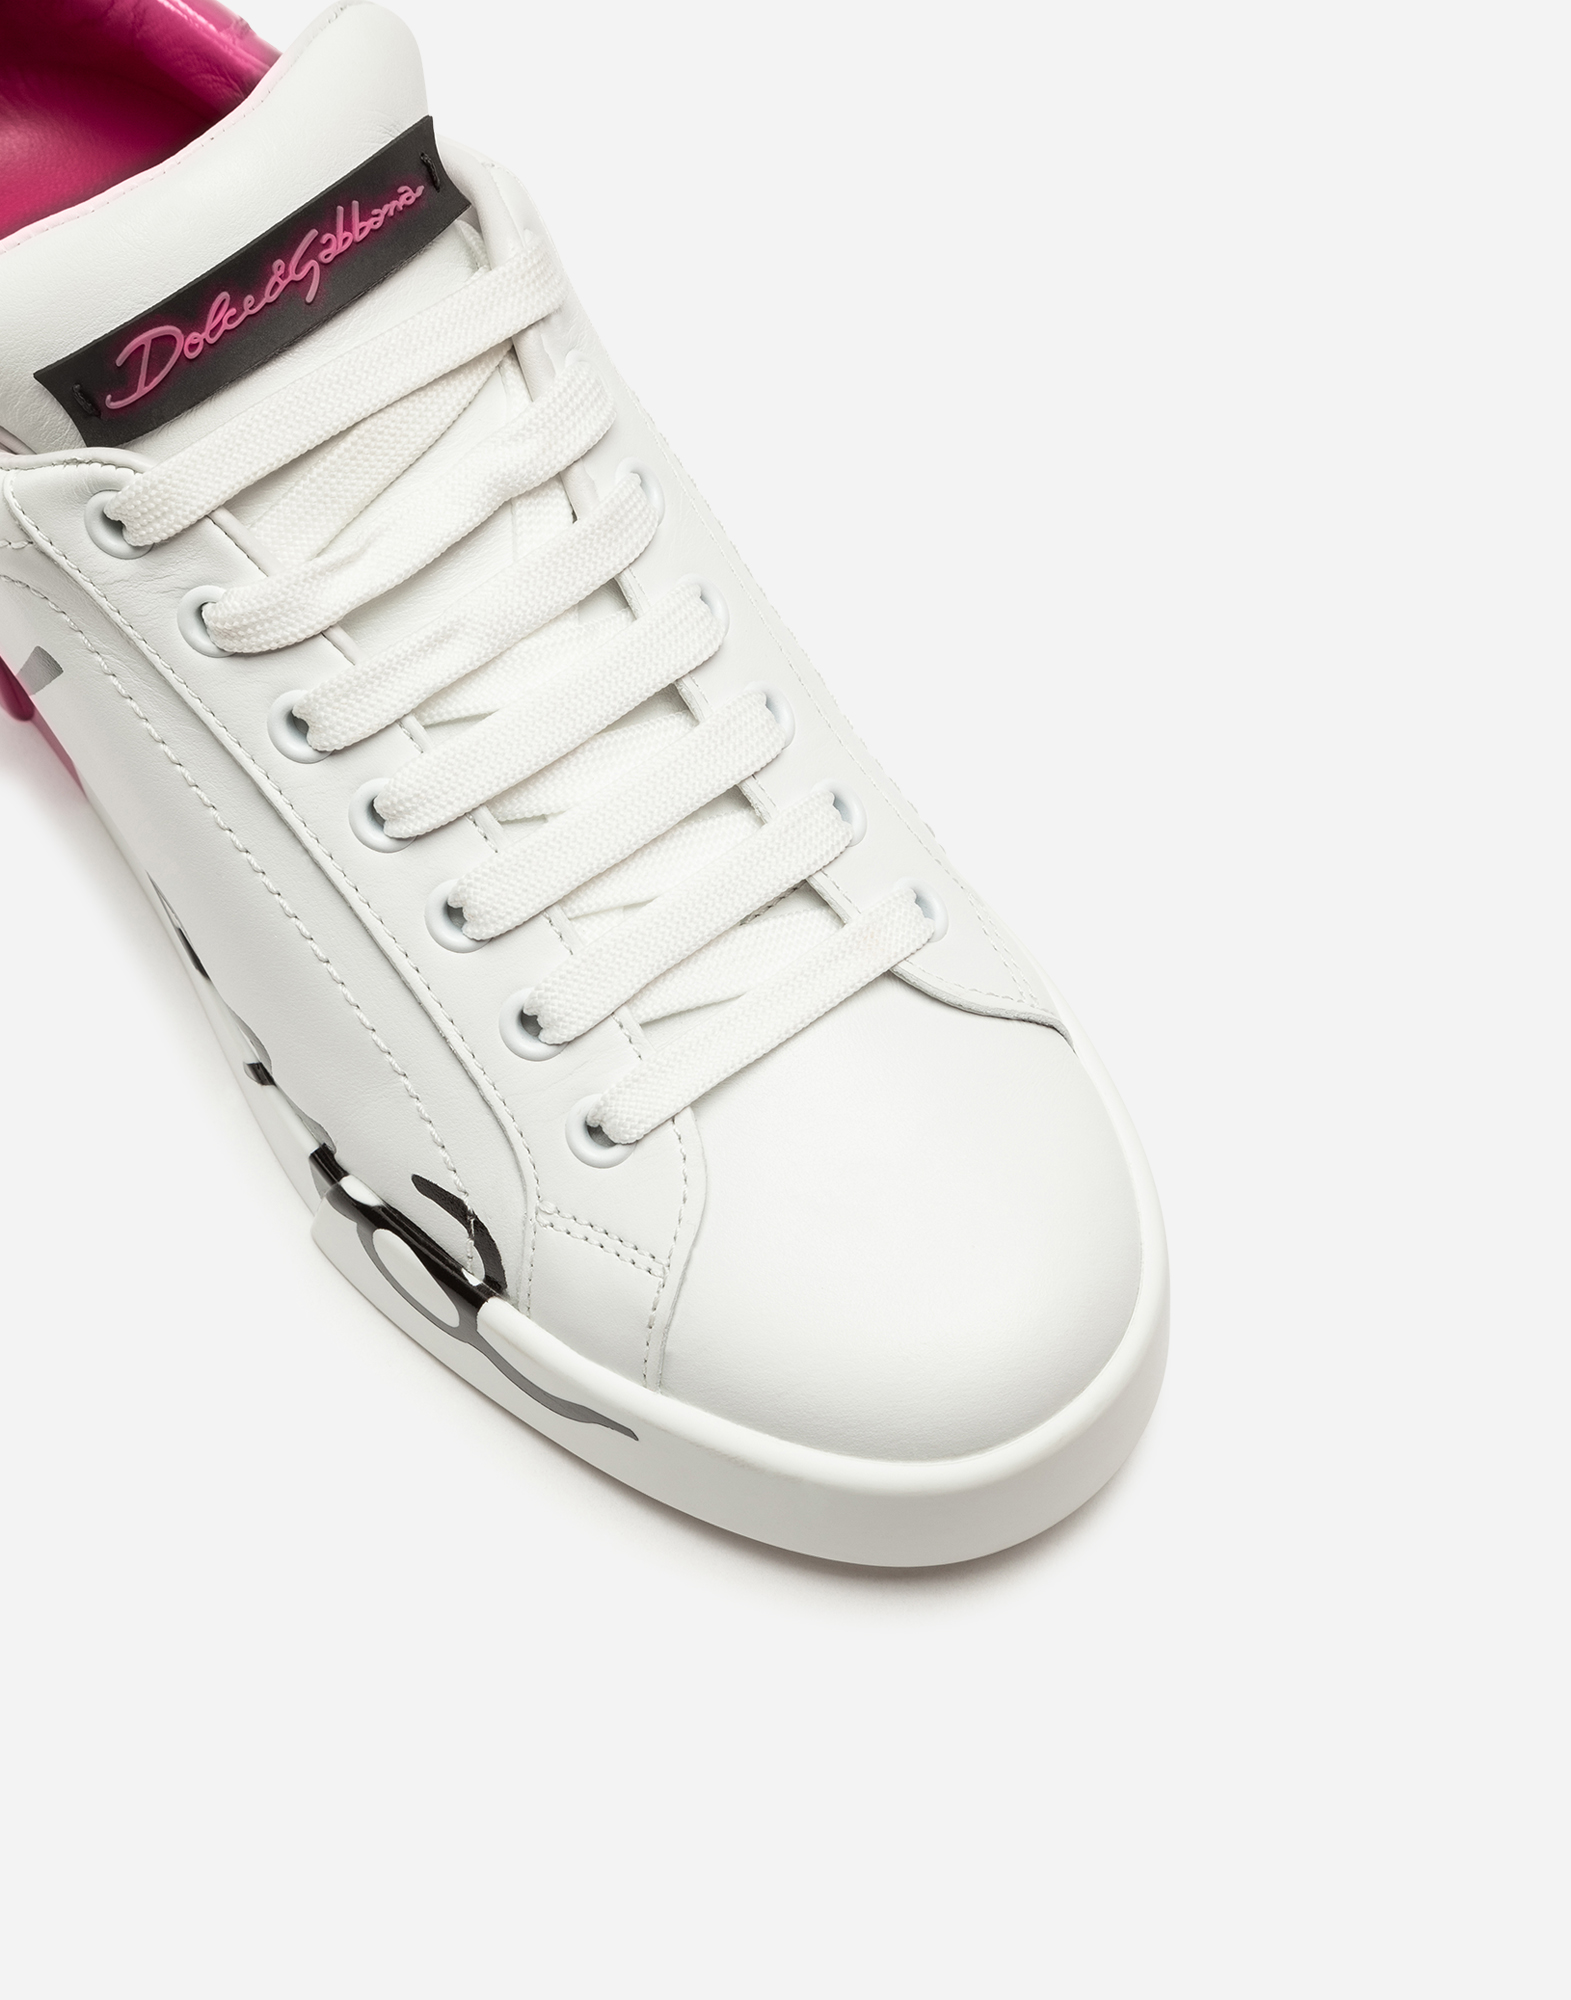 Dolce & Gabbana LEATHER PORTOFINO SNEAKERS